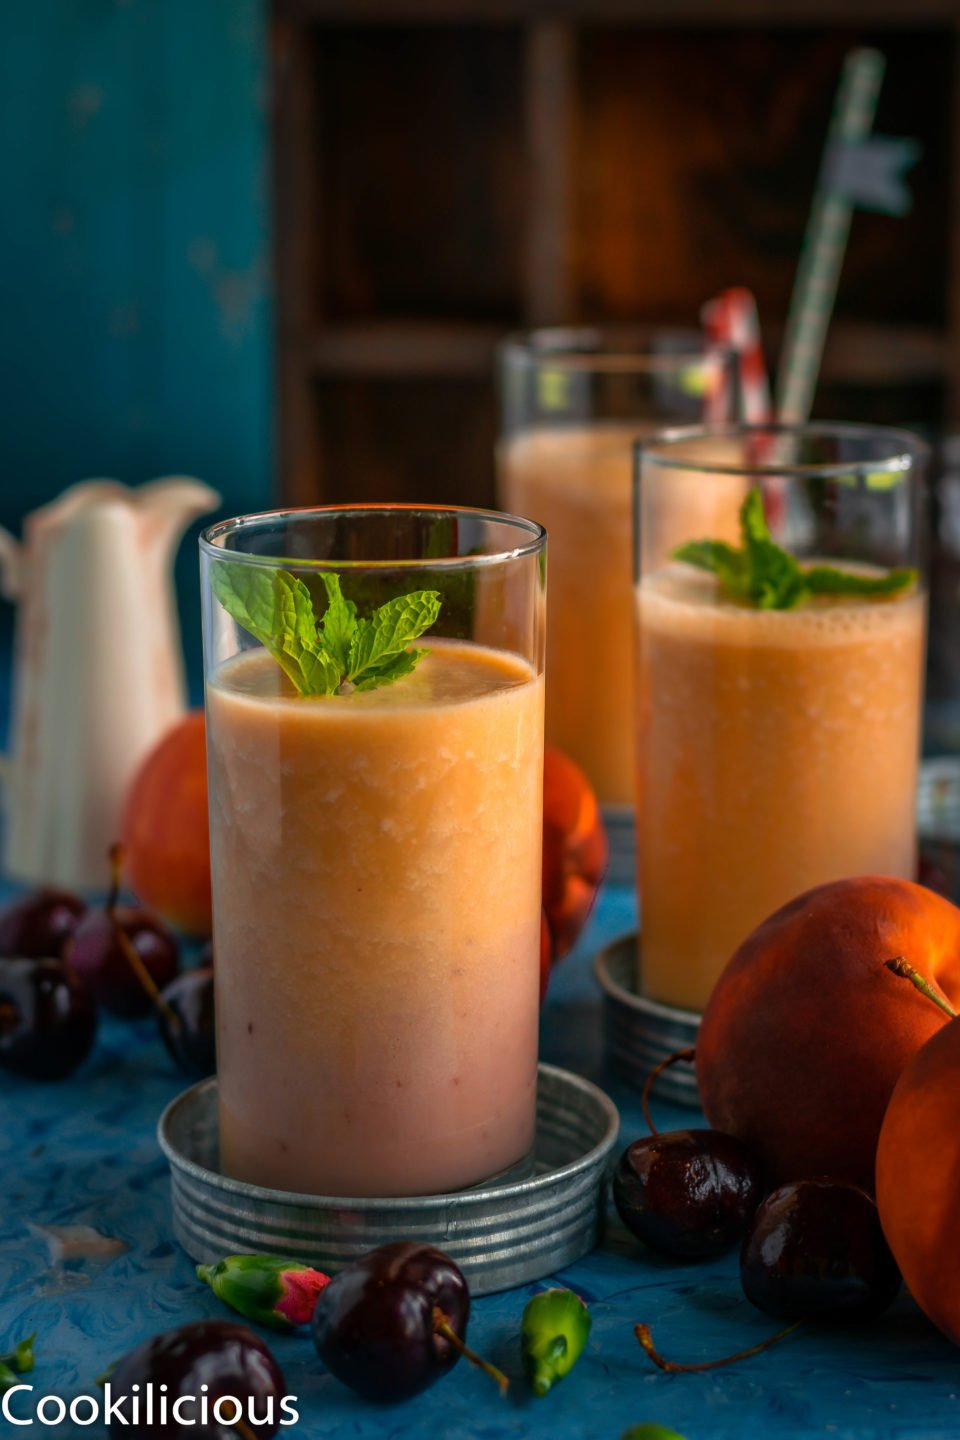 Three glasses of Peach and Raspberry Smoothie